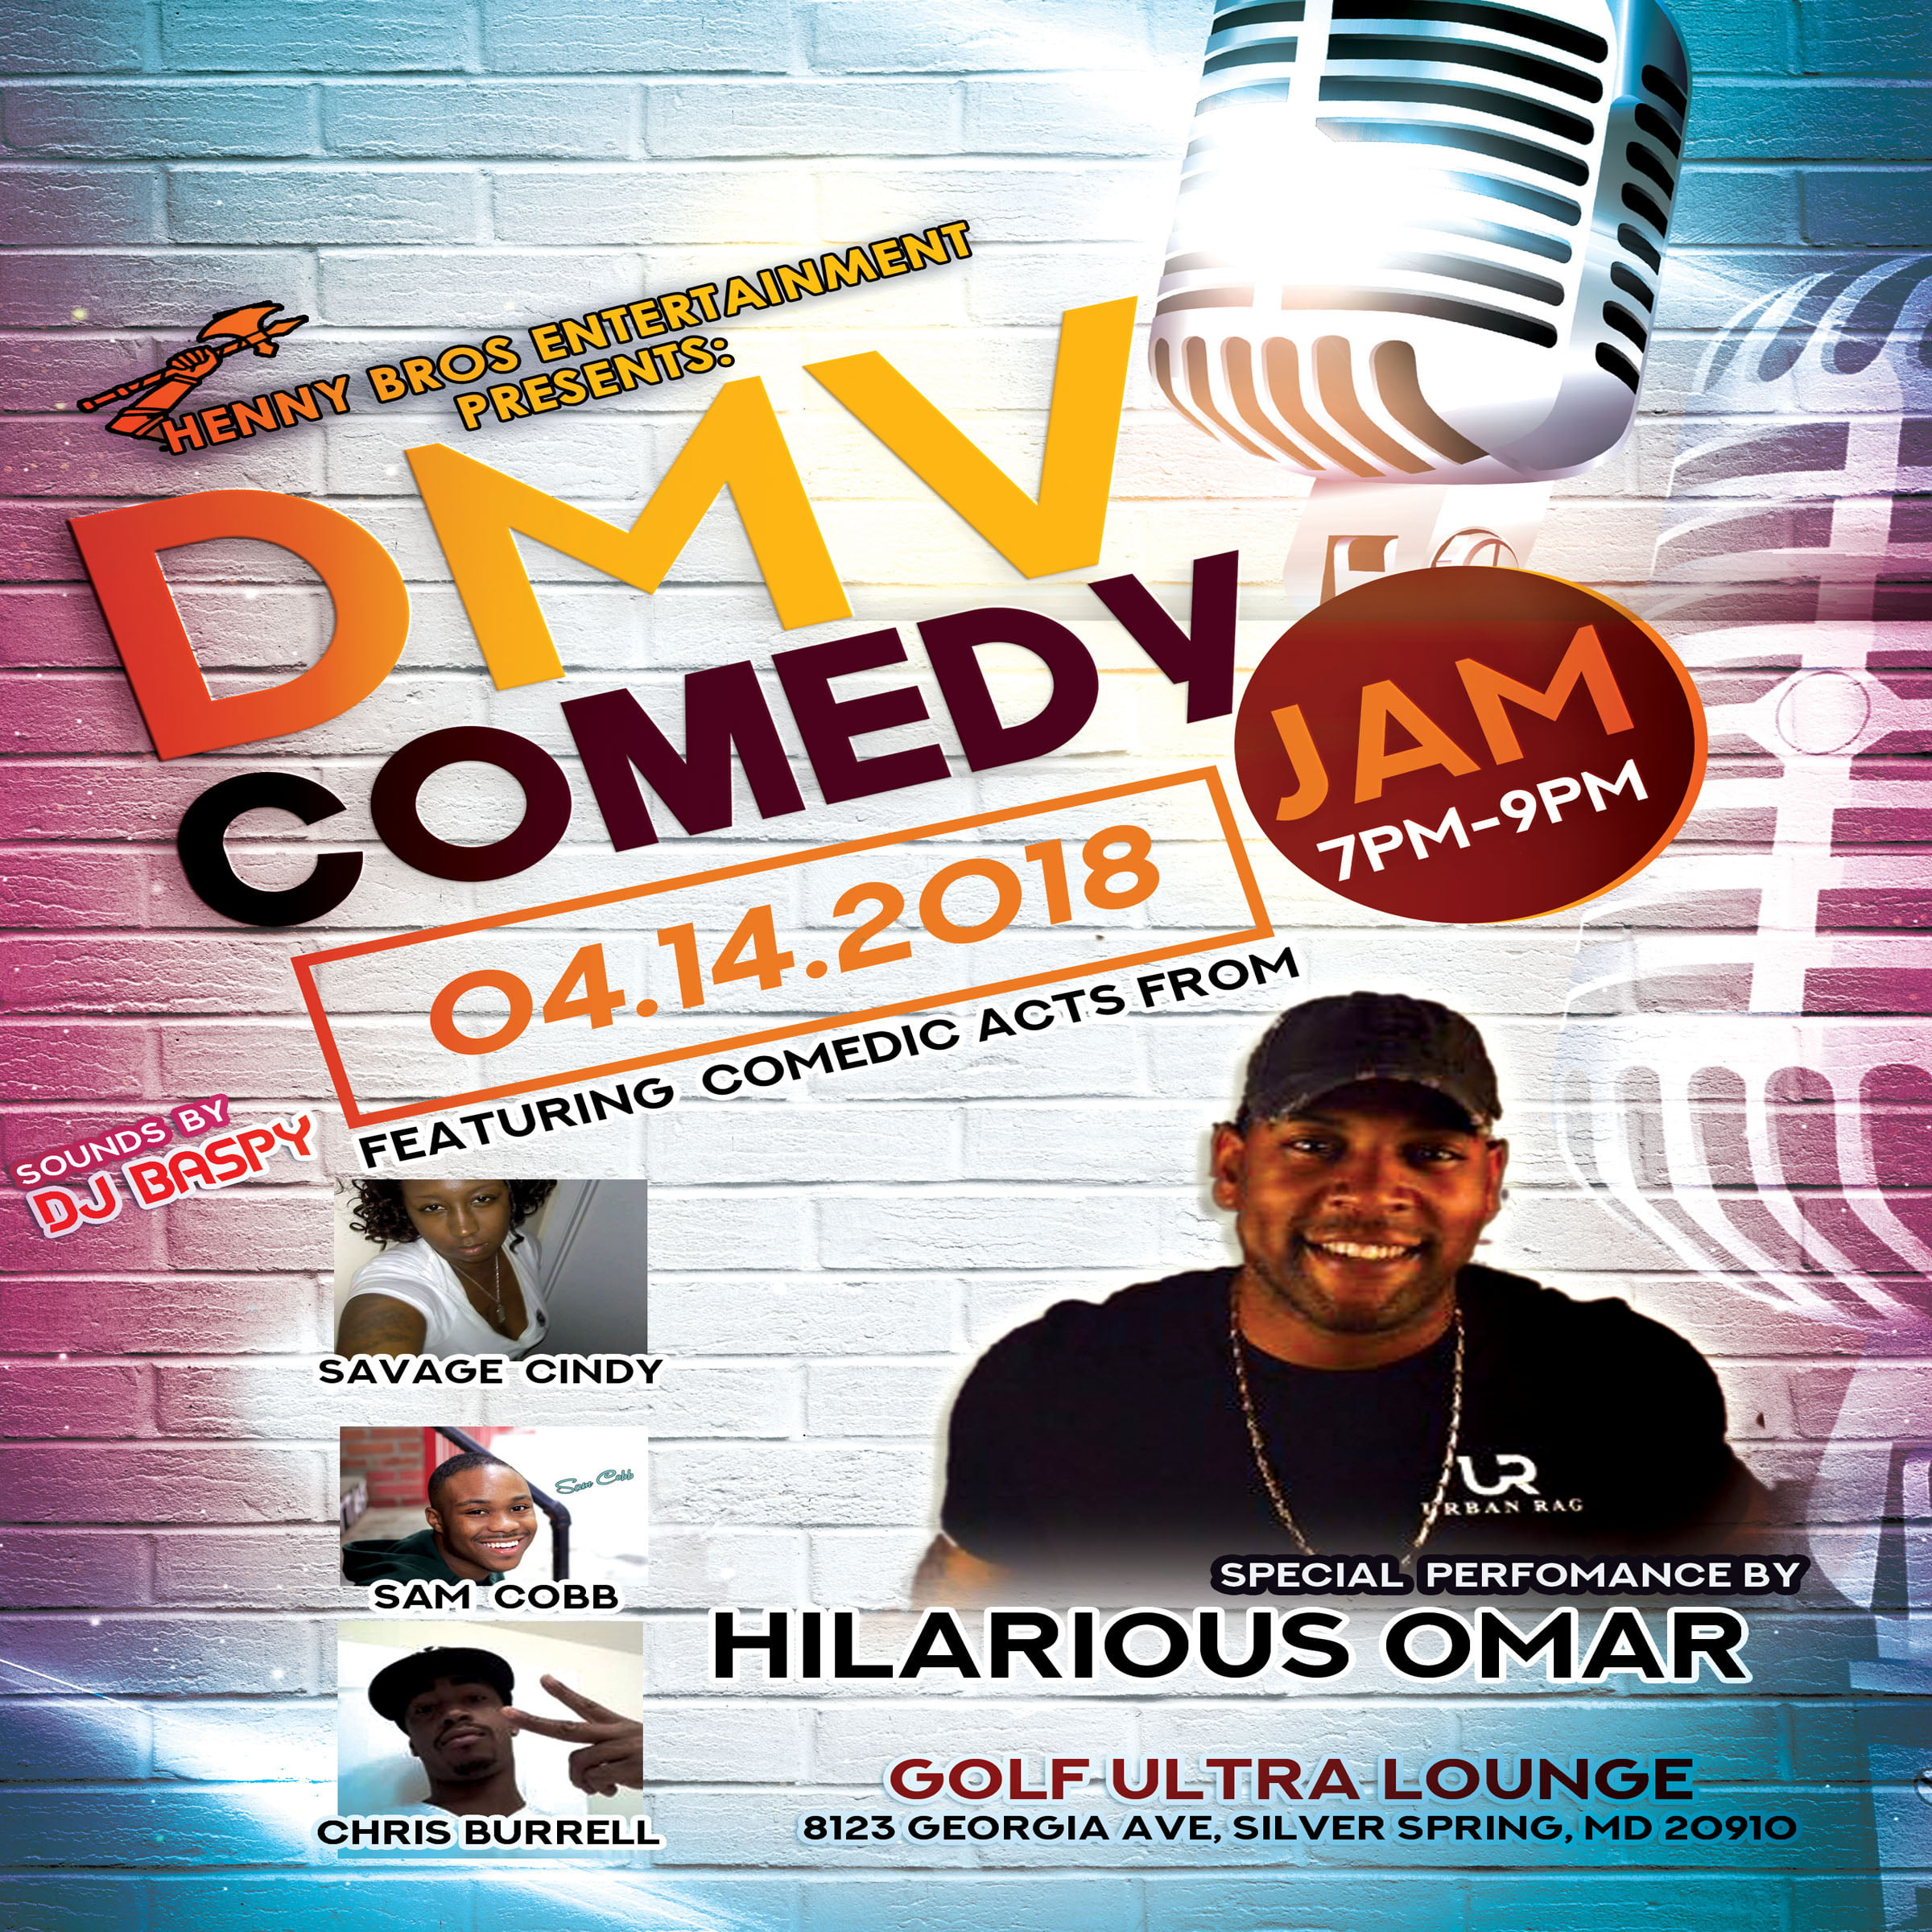 Comedy Flyer Design